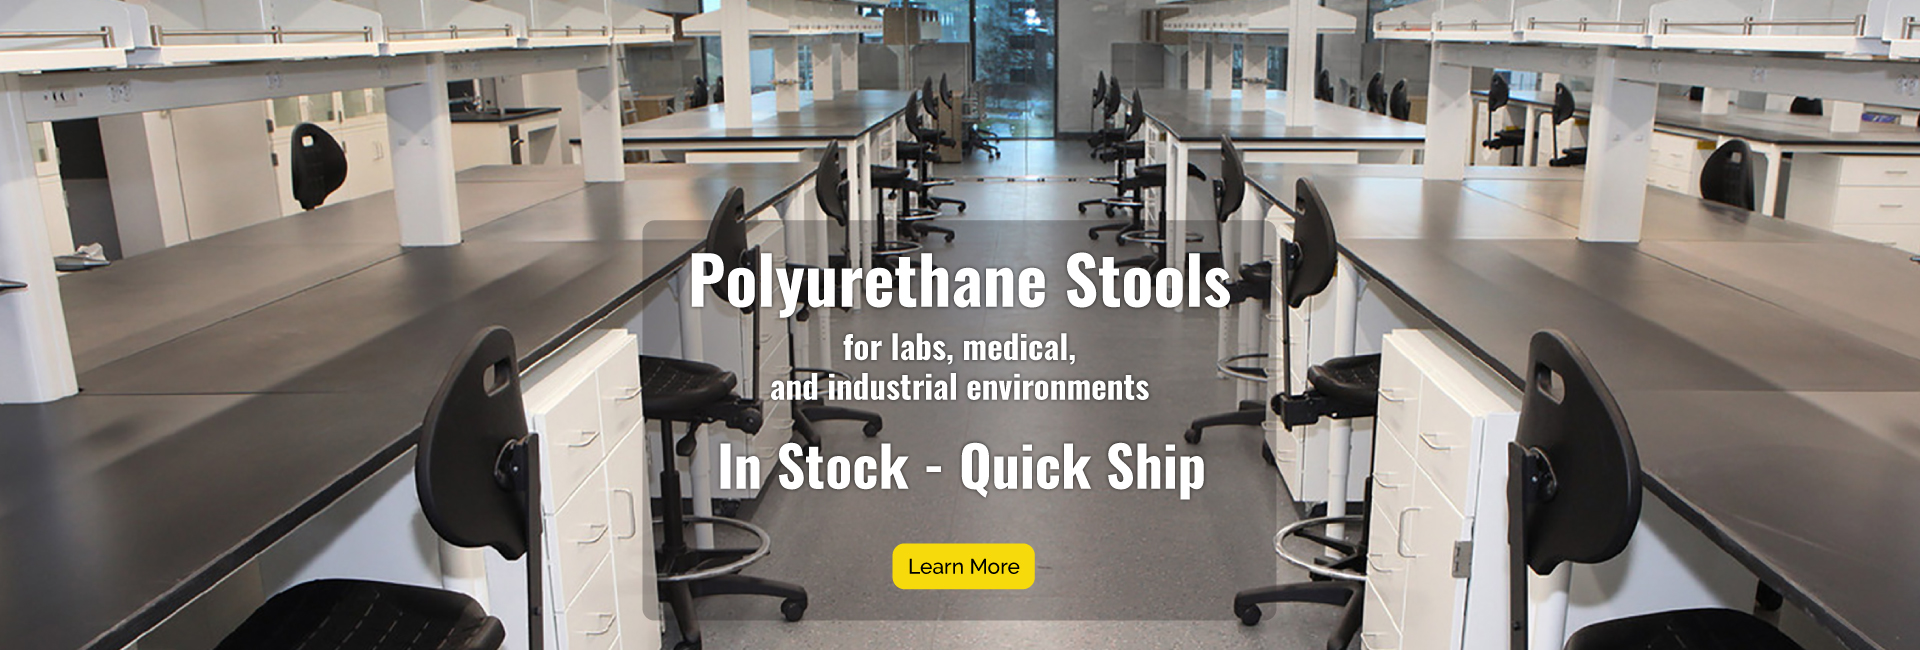 Polyurethane lab or industrial stools are in stock and ship quickly